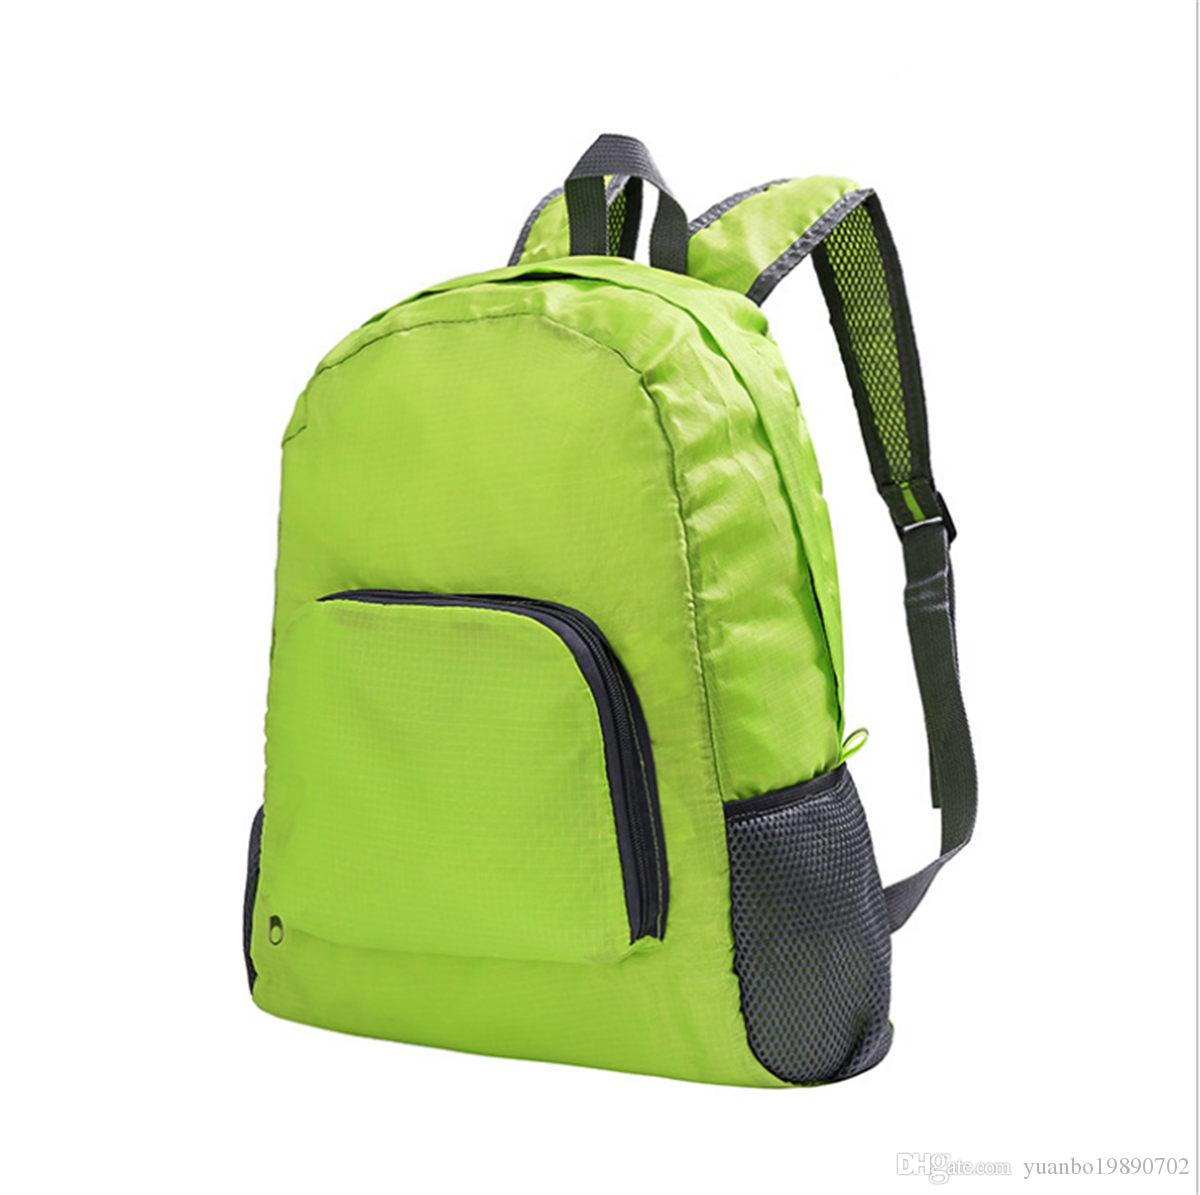 a6435681f4f4 Students Backpack With Basketball Player Fashion Designer Backpacks For  School Bags Stylish Mens Luxury Double Shoulder Bags Cute Backpacks Hiking  Backpack ...